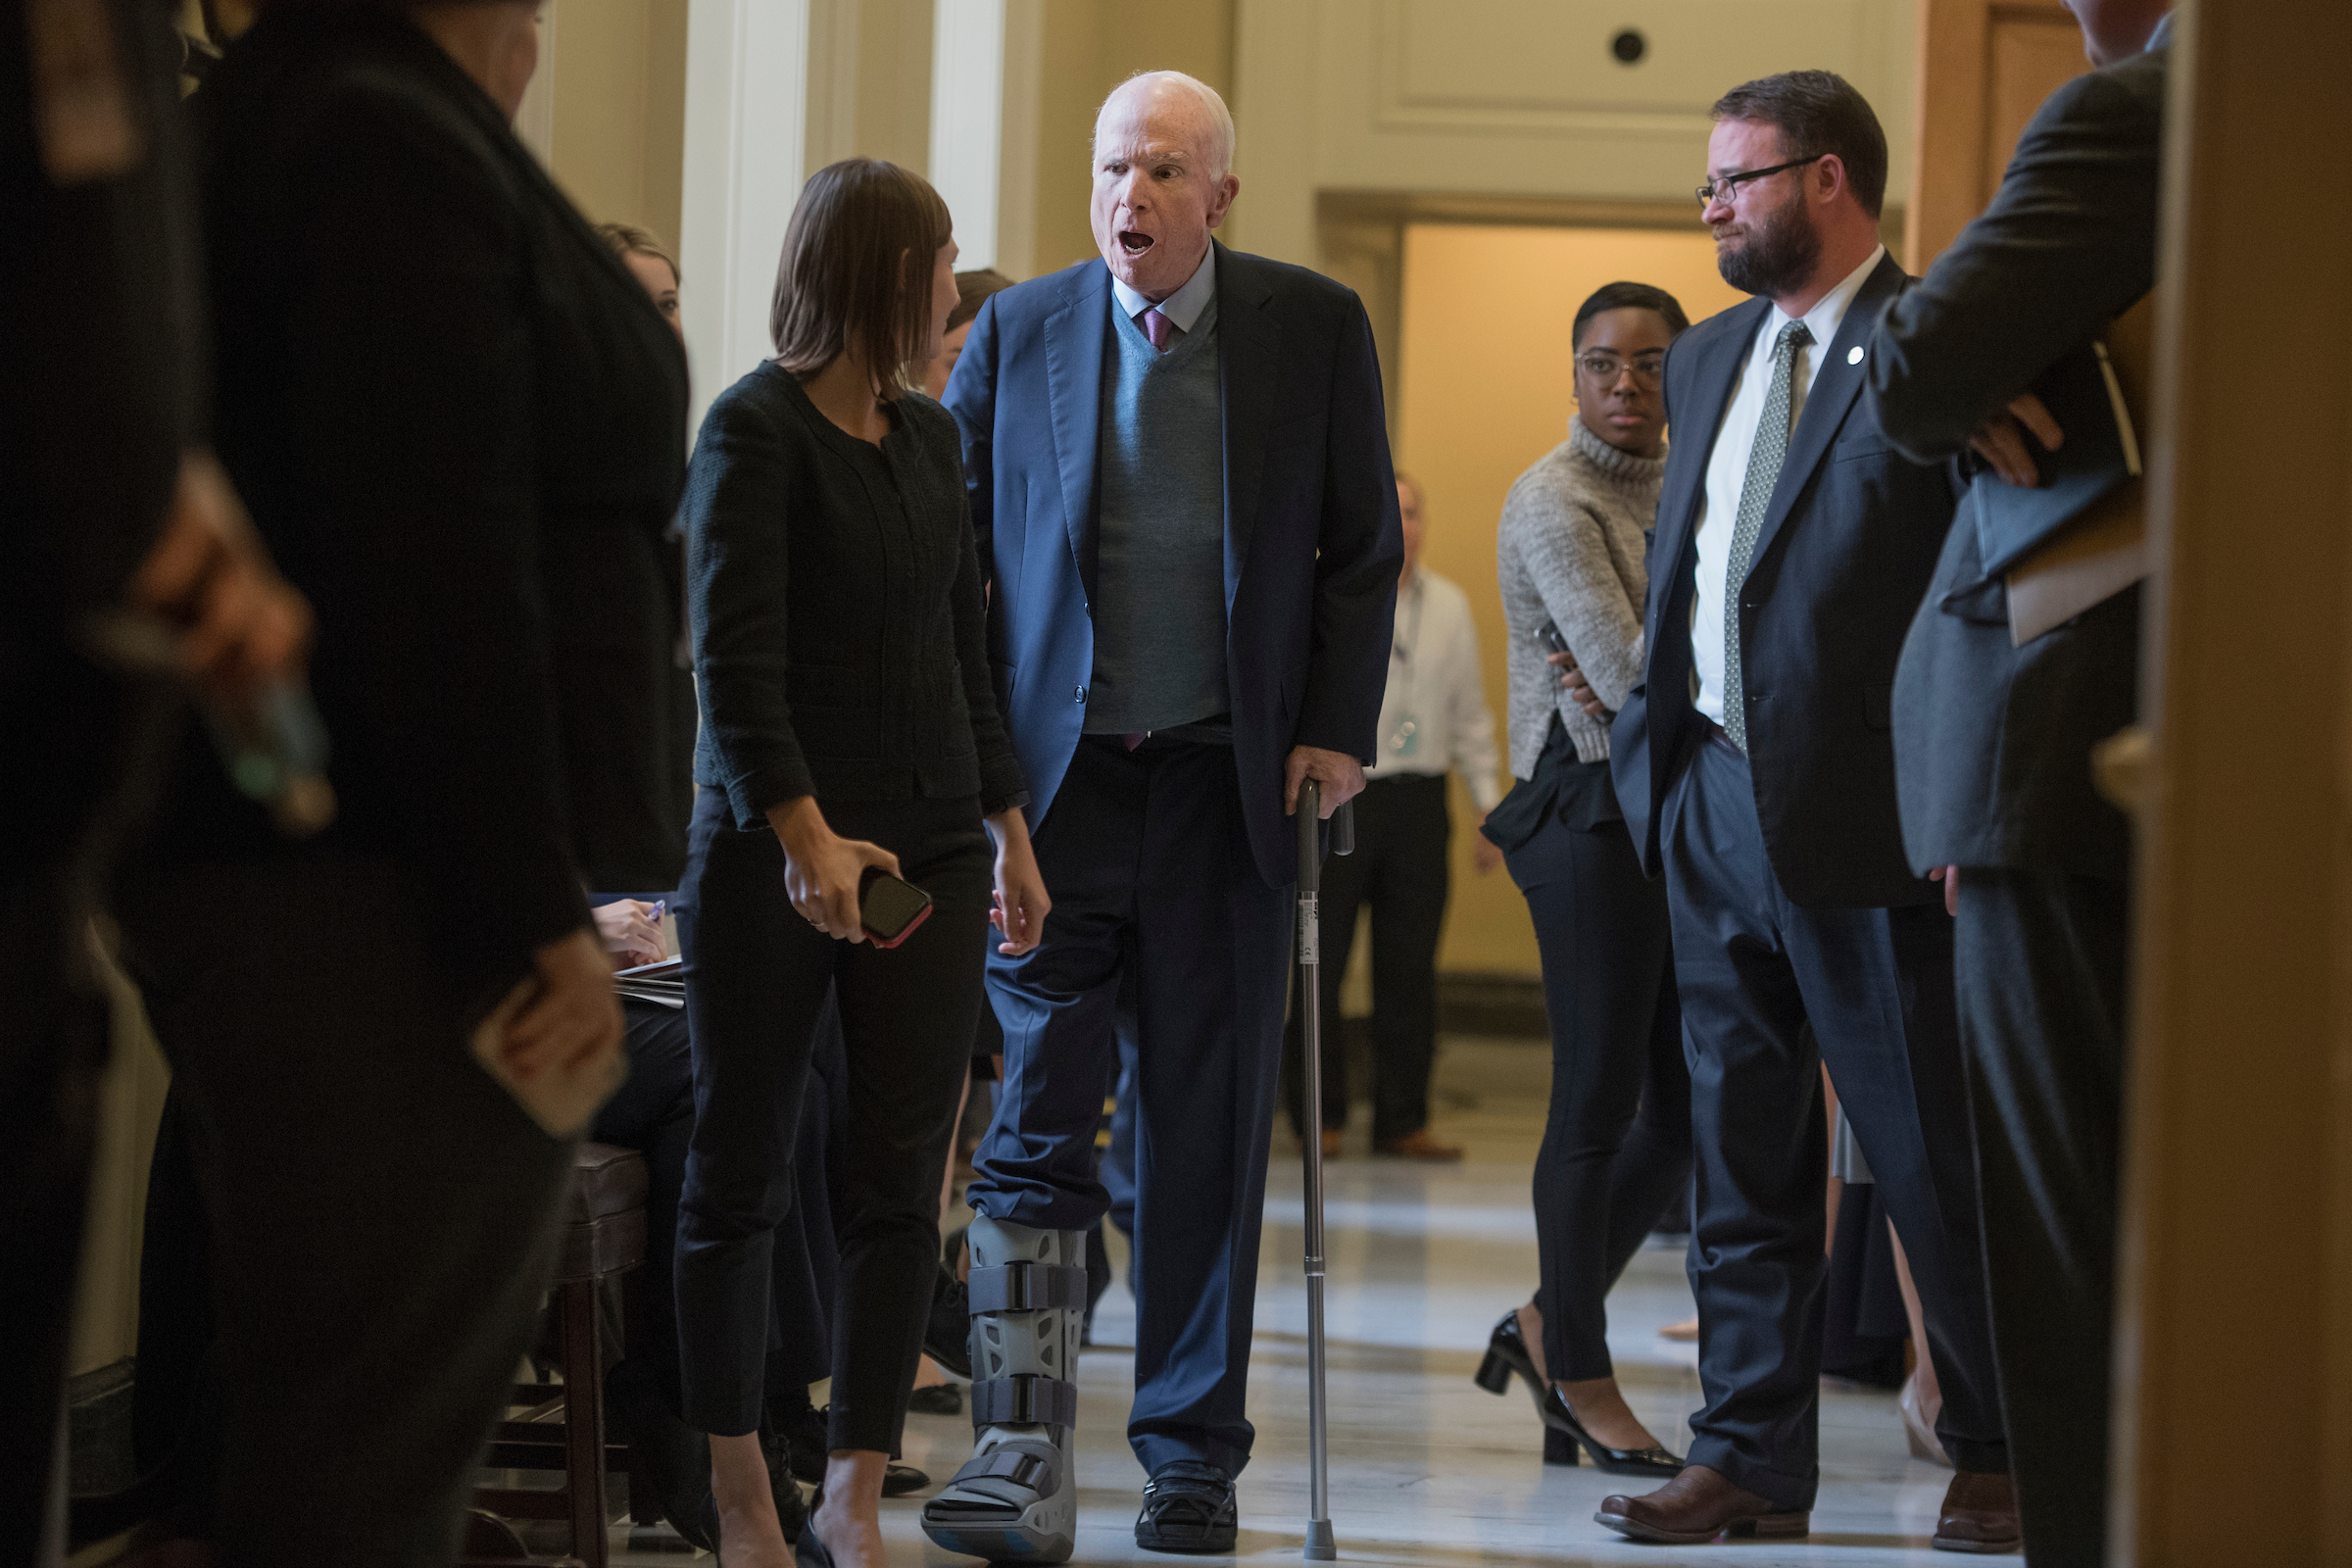 UNITED STATES - NOVEMBER 14: Sen. John McCain, R-Ariz., leaves the Republican Senate Policy luncheon in the Capitol on November 14, 2017.(Photo By Tom Williams/CQ Roll Call)